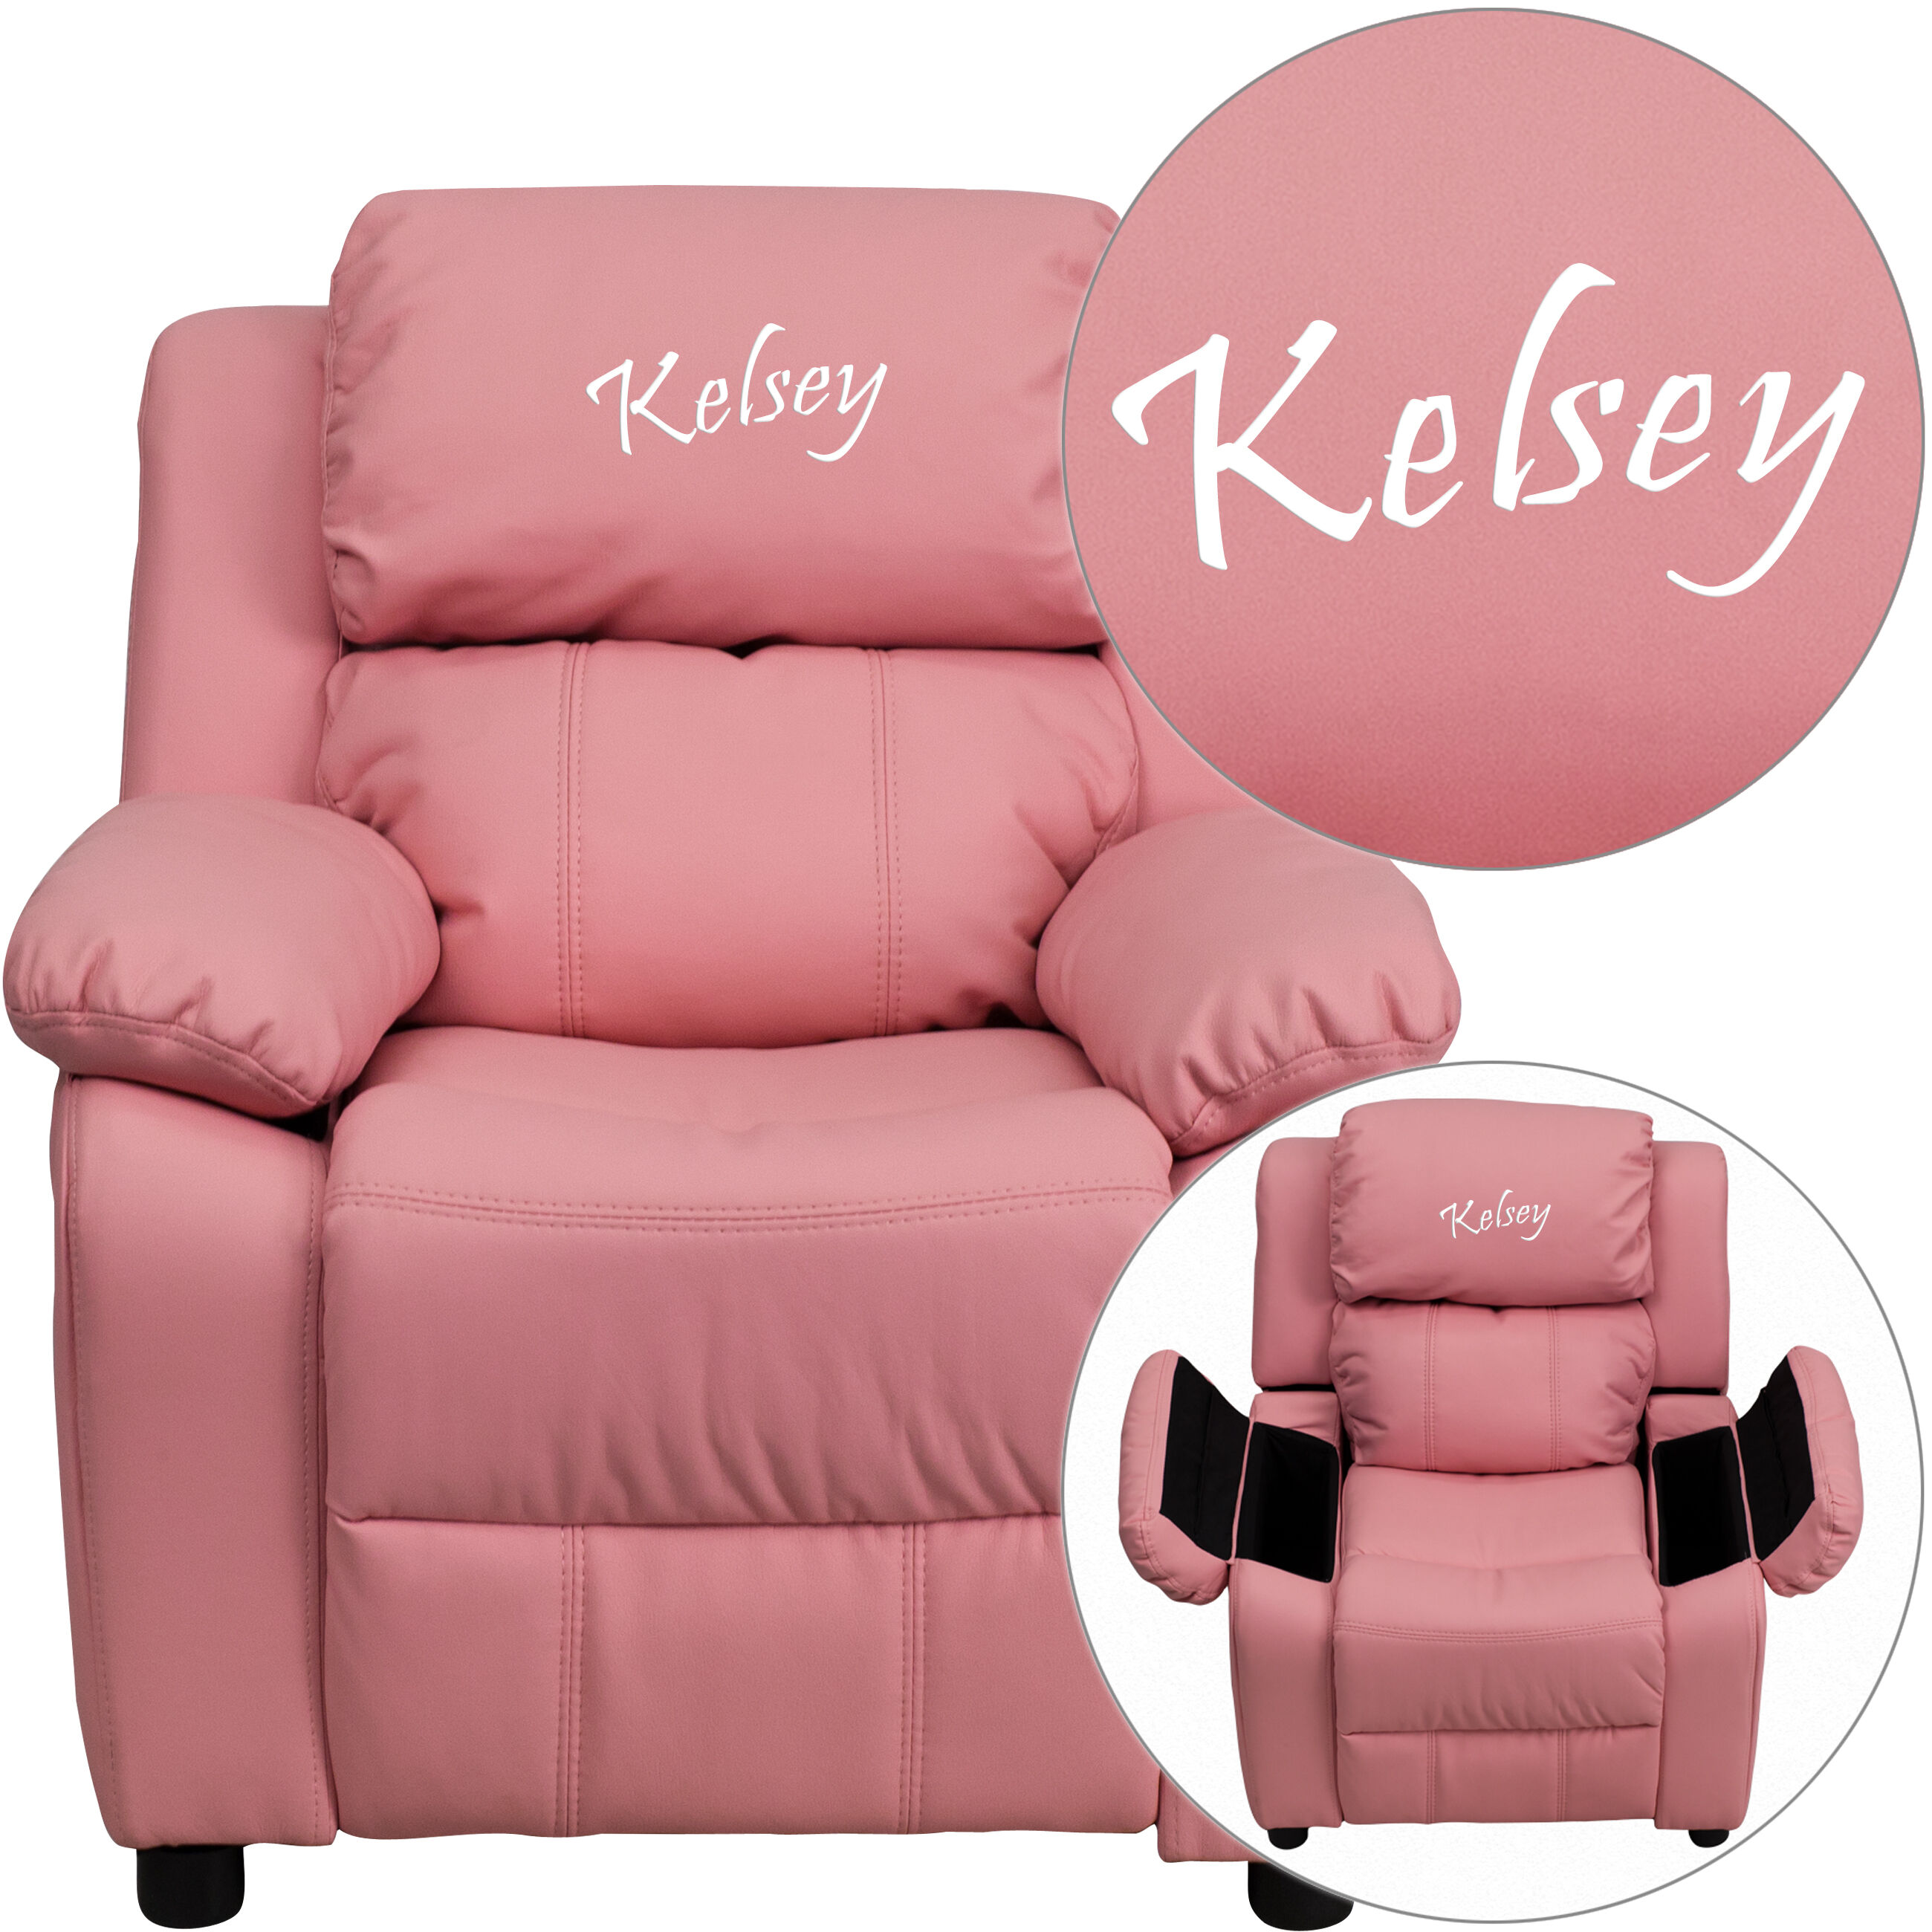 kids tv chair used pedicure chairs for sale emb pink vinyl recliner bt 7985 kid gg bizchair com